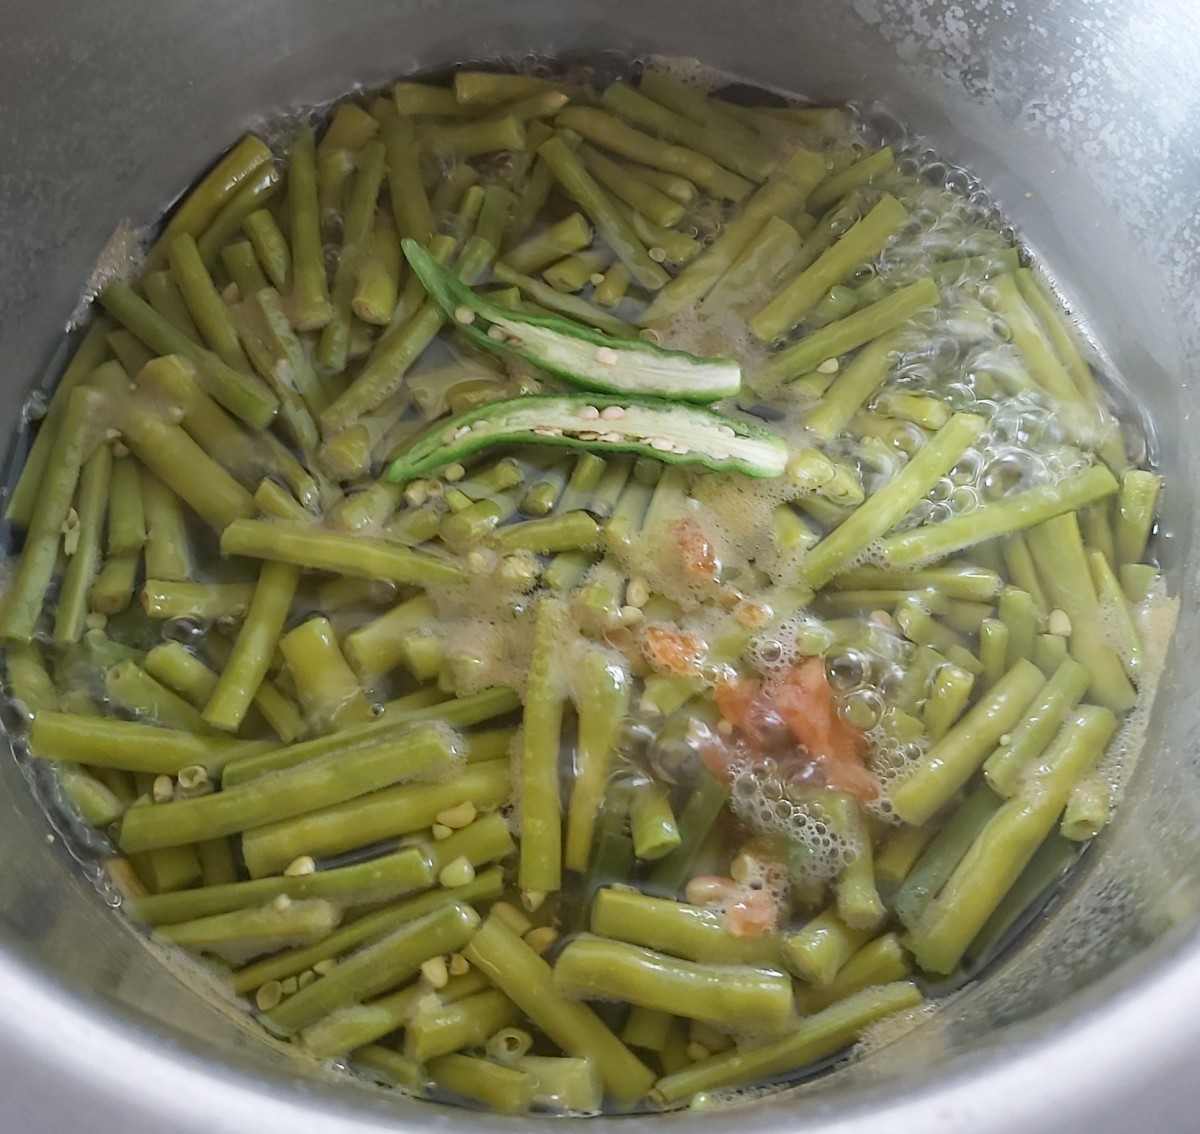 When the long beans are cooked, add 1-2 slit green chilies and 1-2 teaspoons of jaggery. Bring this to a boil.